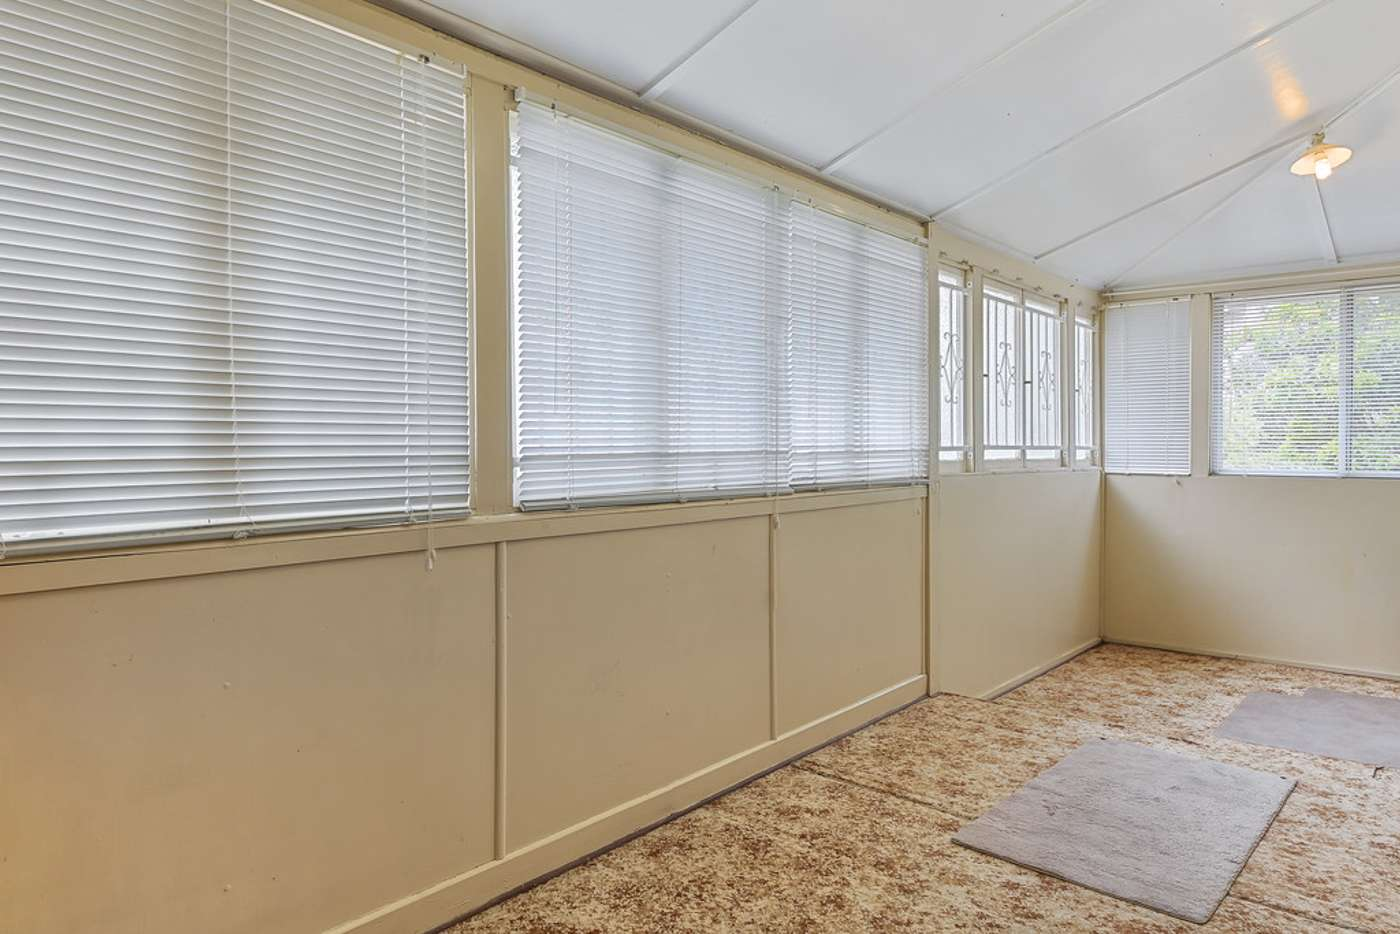 Fifth view of Homely house listing, 47 Greene Street, Newmarket QLD 4051